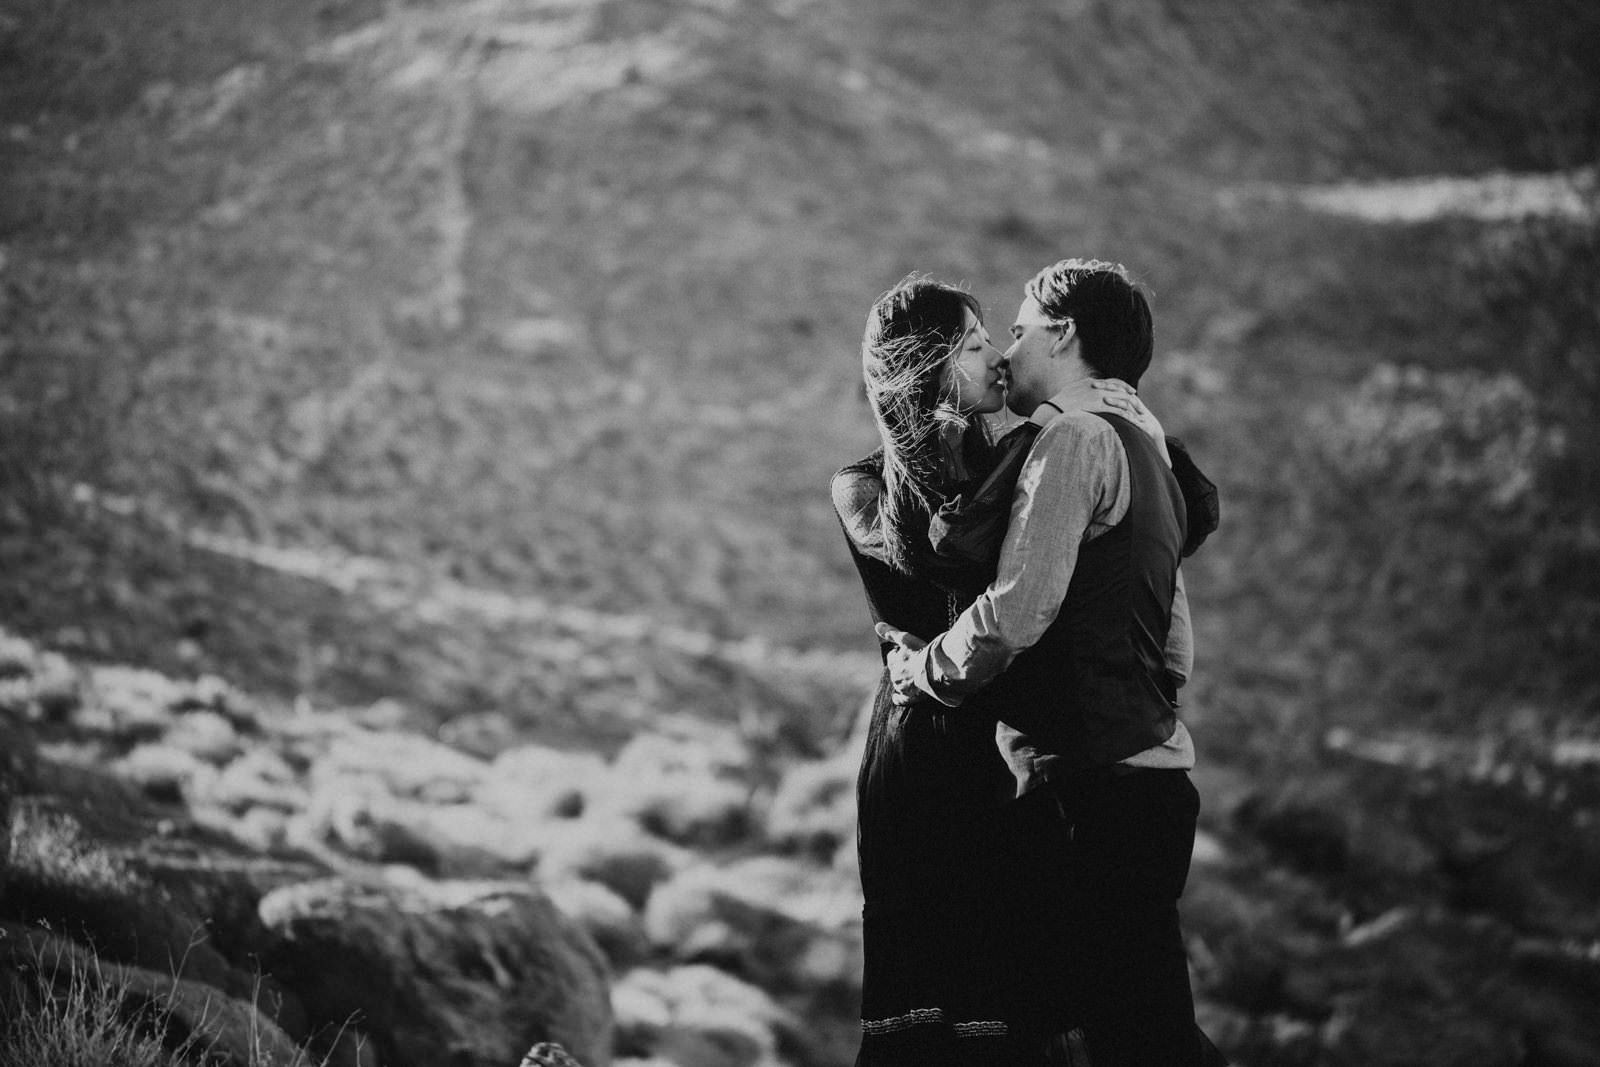 anza borrego derest couples romantic session in sunset